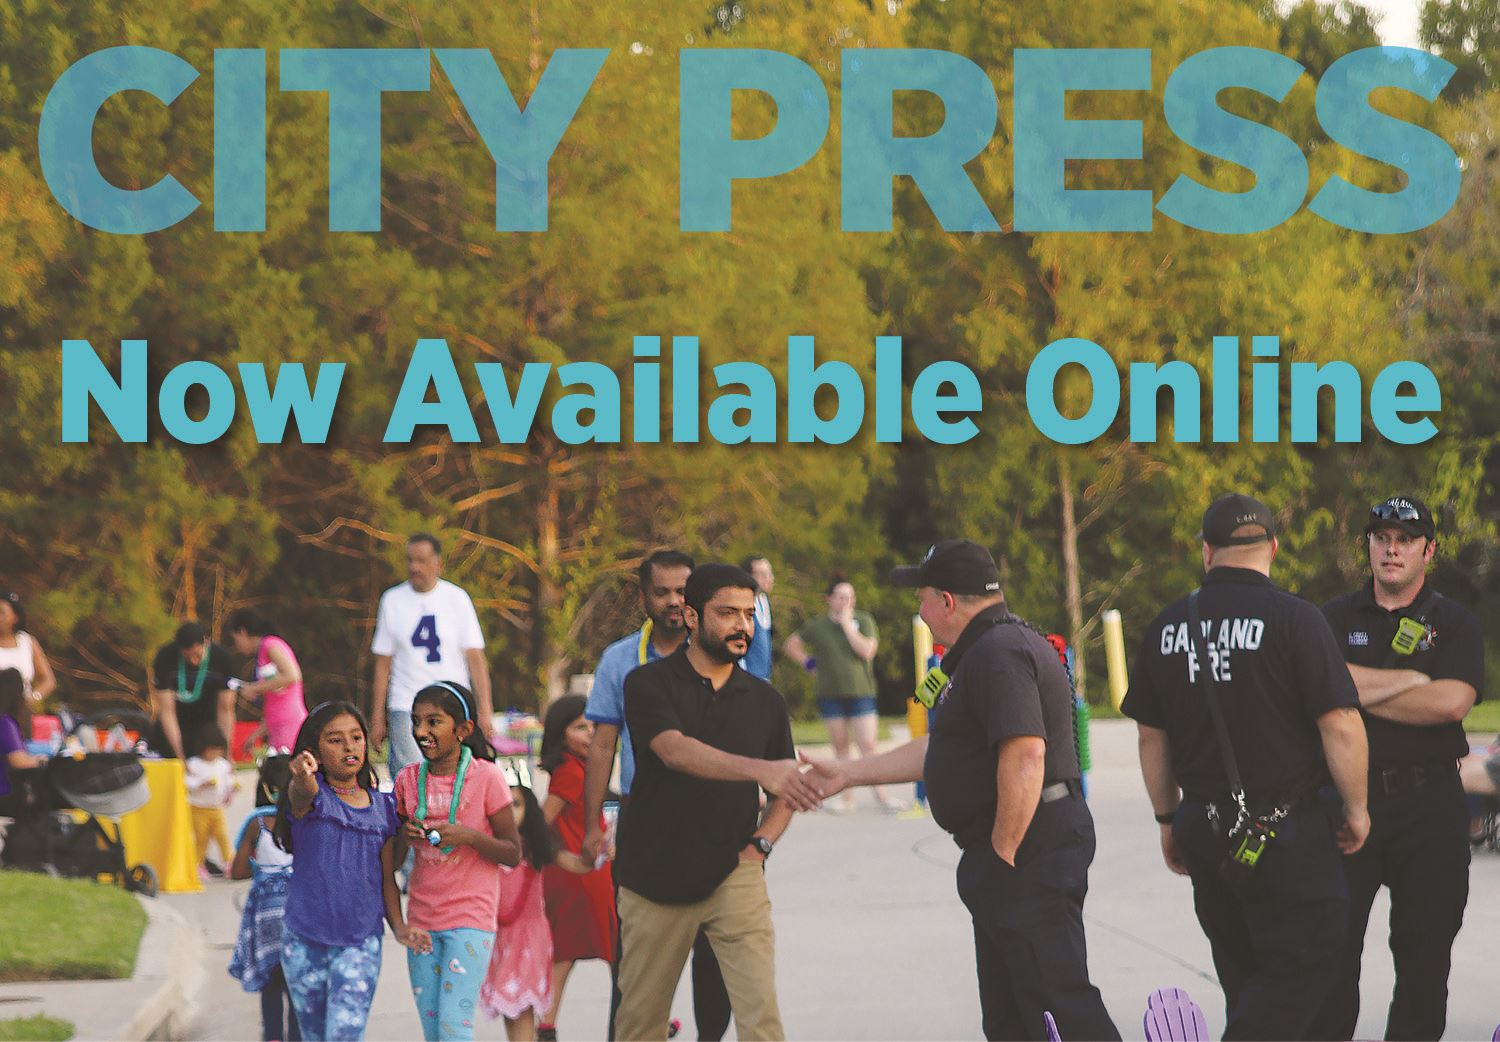 GarlandCityPress_2019November_Now Online_360x250